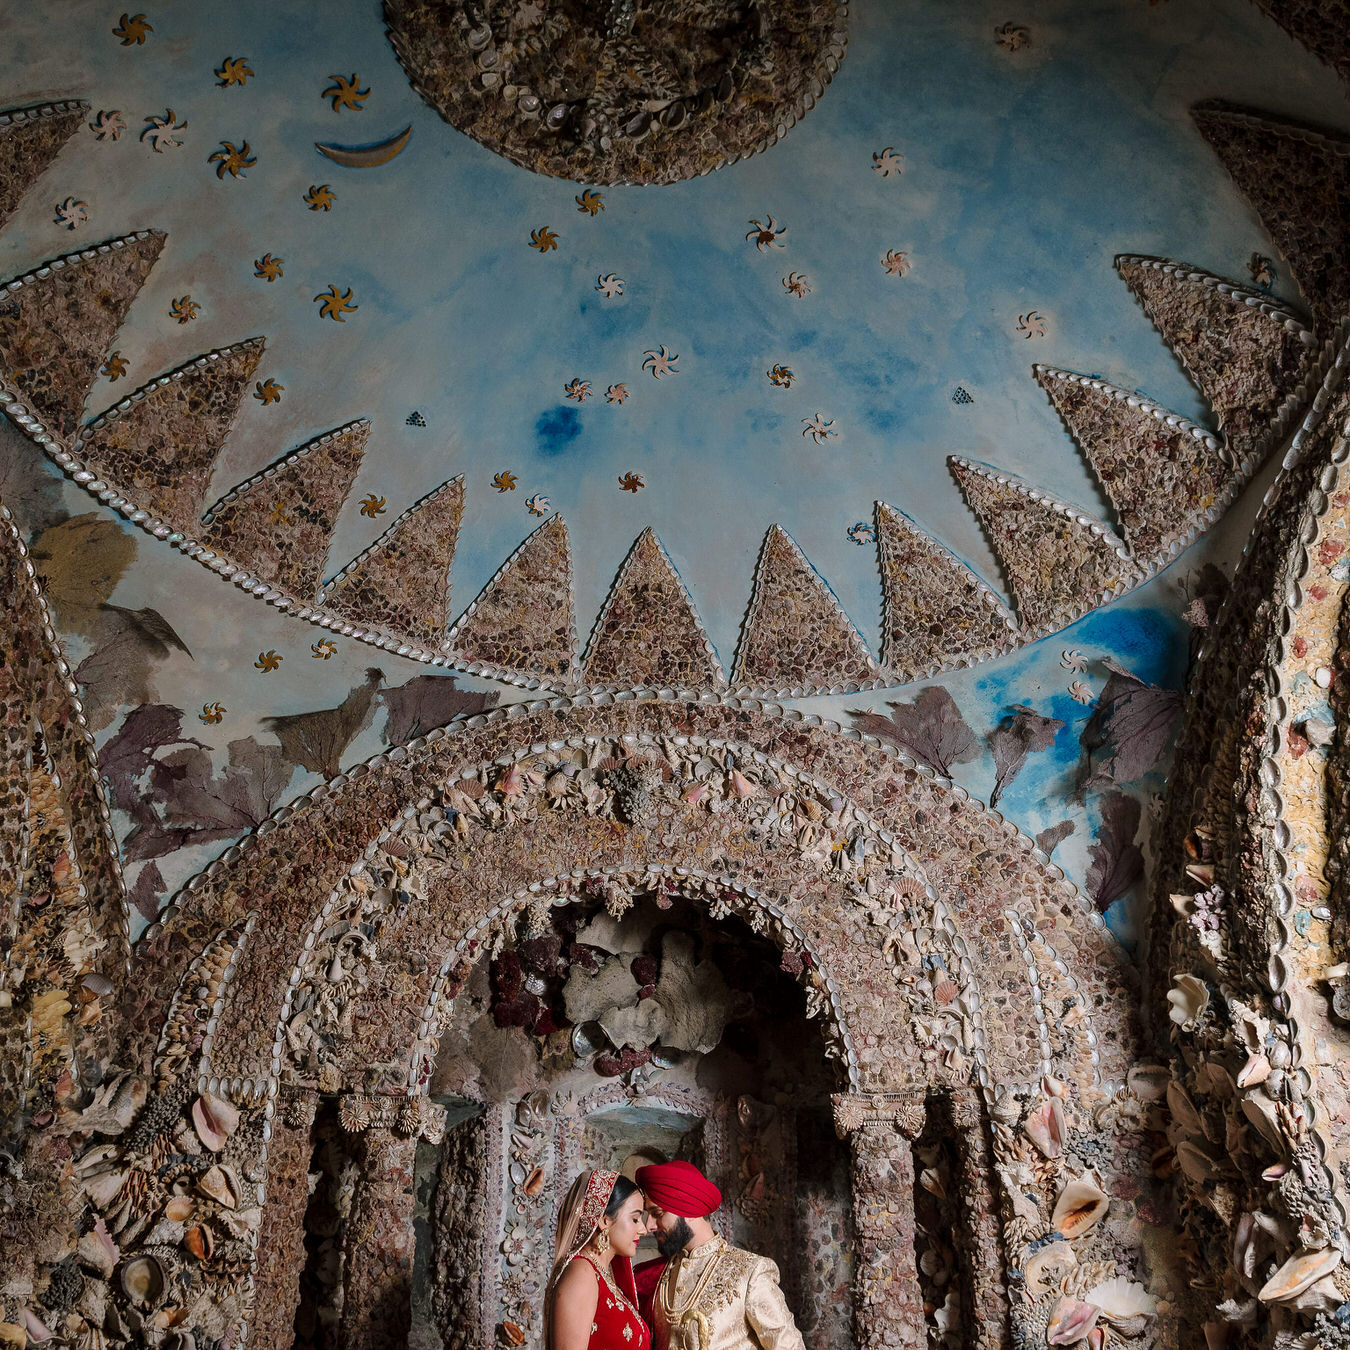 Sikh Asian wedding photographs inside the Hampton Court House shell grotto showing a blue sky with stars and moon made out of shells.